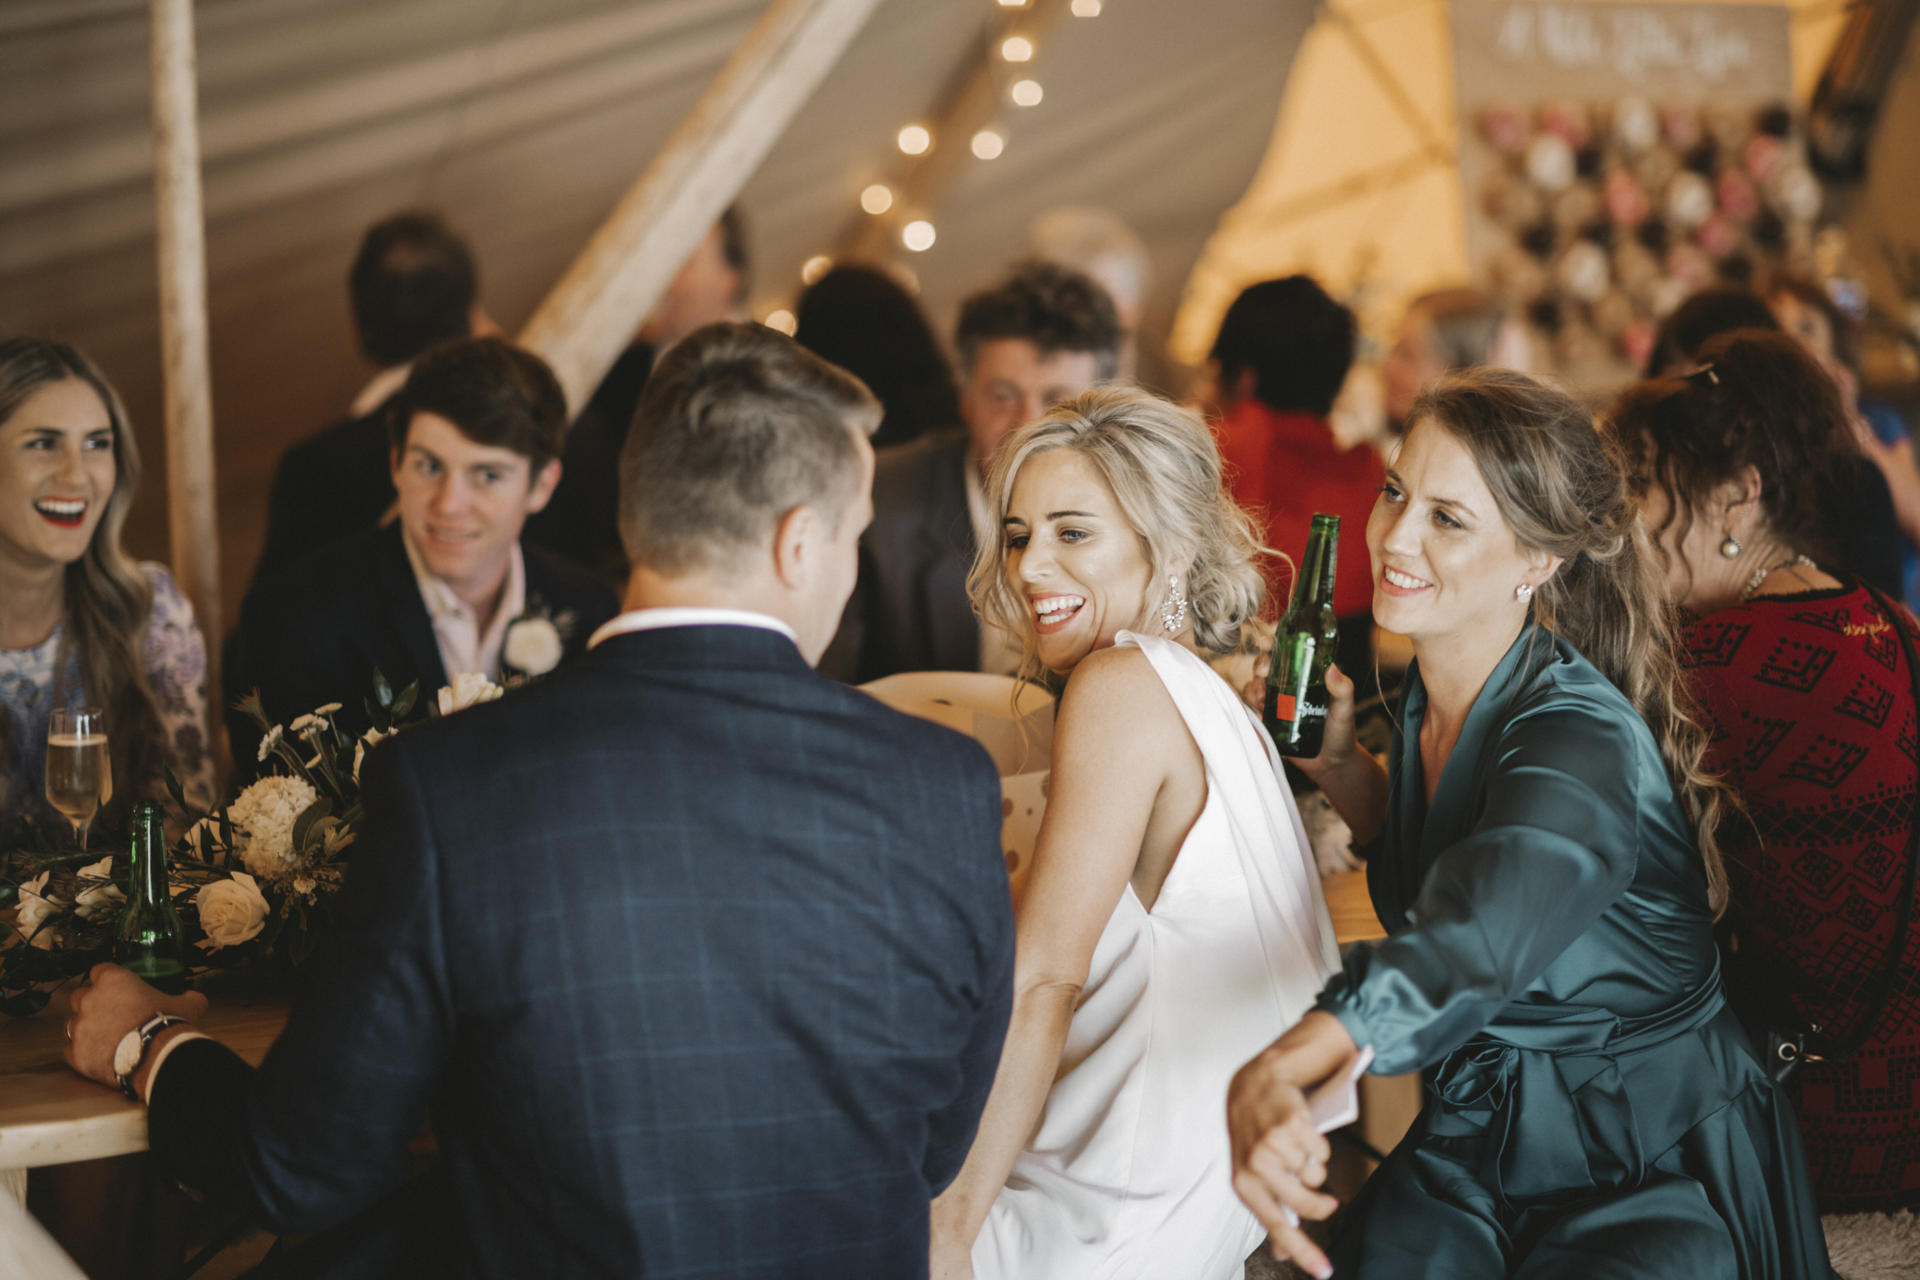 Queenstown and Wanaka wedding planning and styling